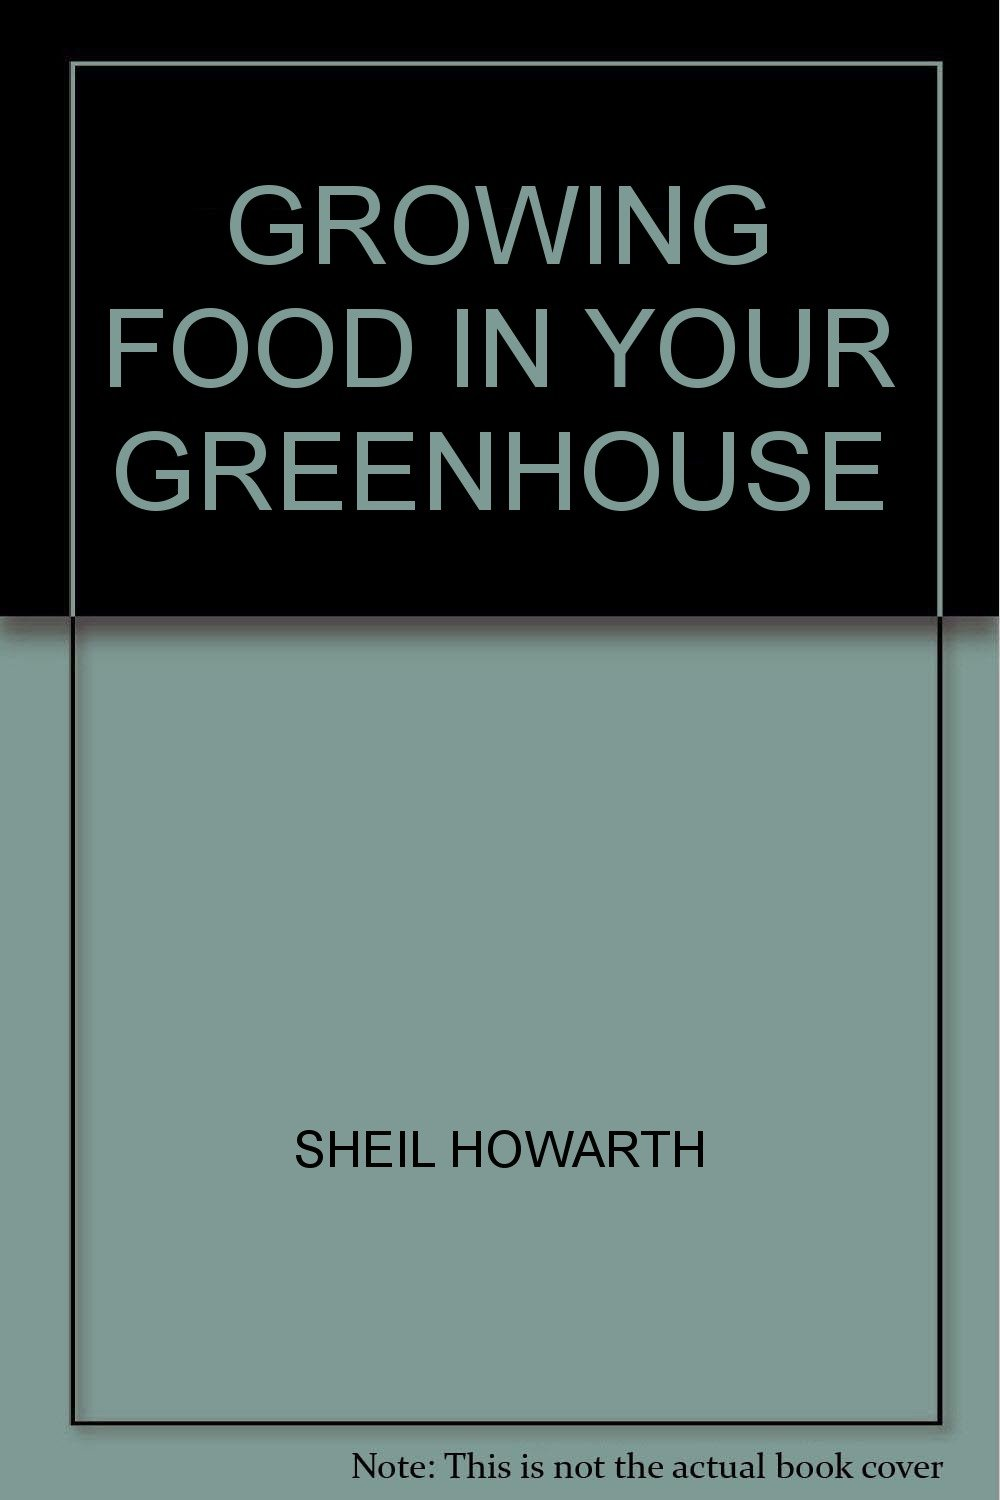 GROWING FOOD IN YOUR GREENHOUSE